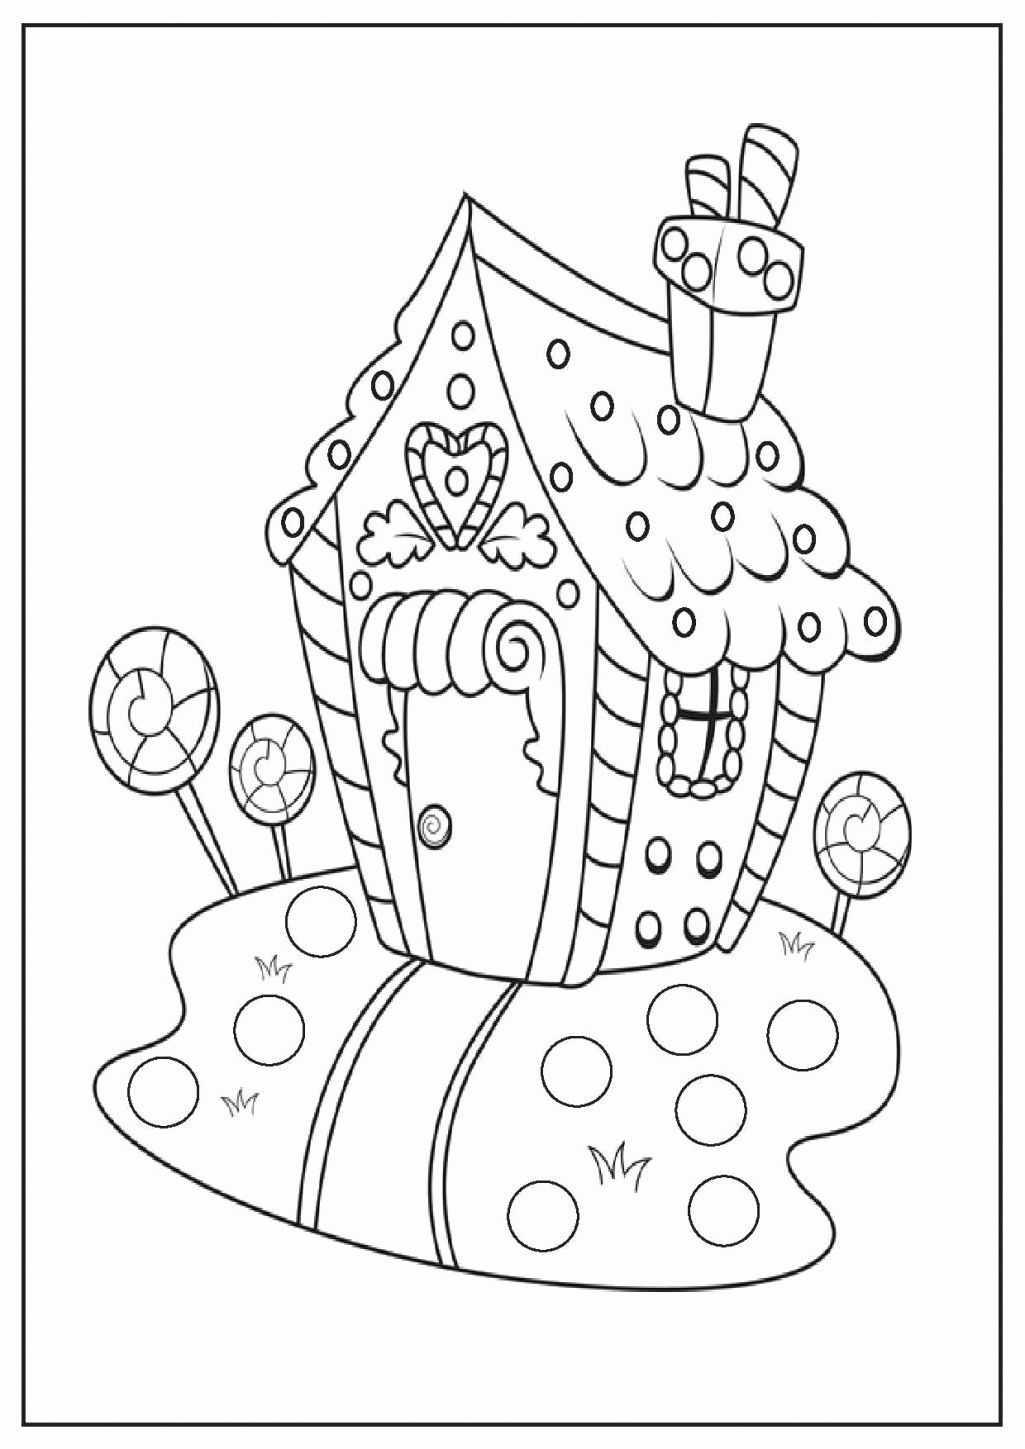 Coloring Worksheets For 1st Grade Luxury Printable